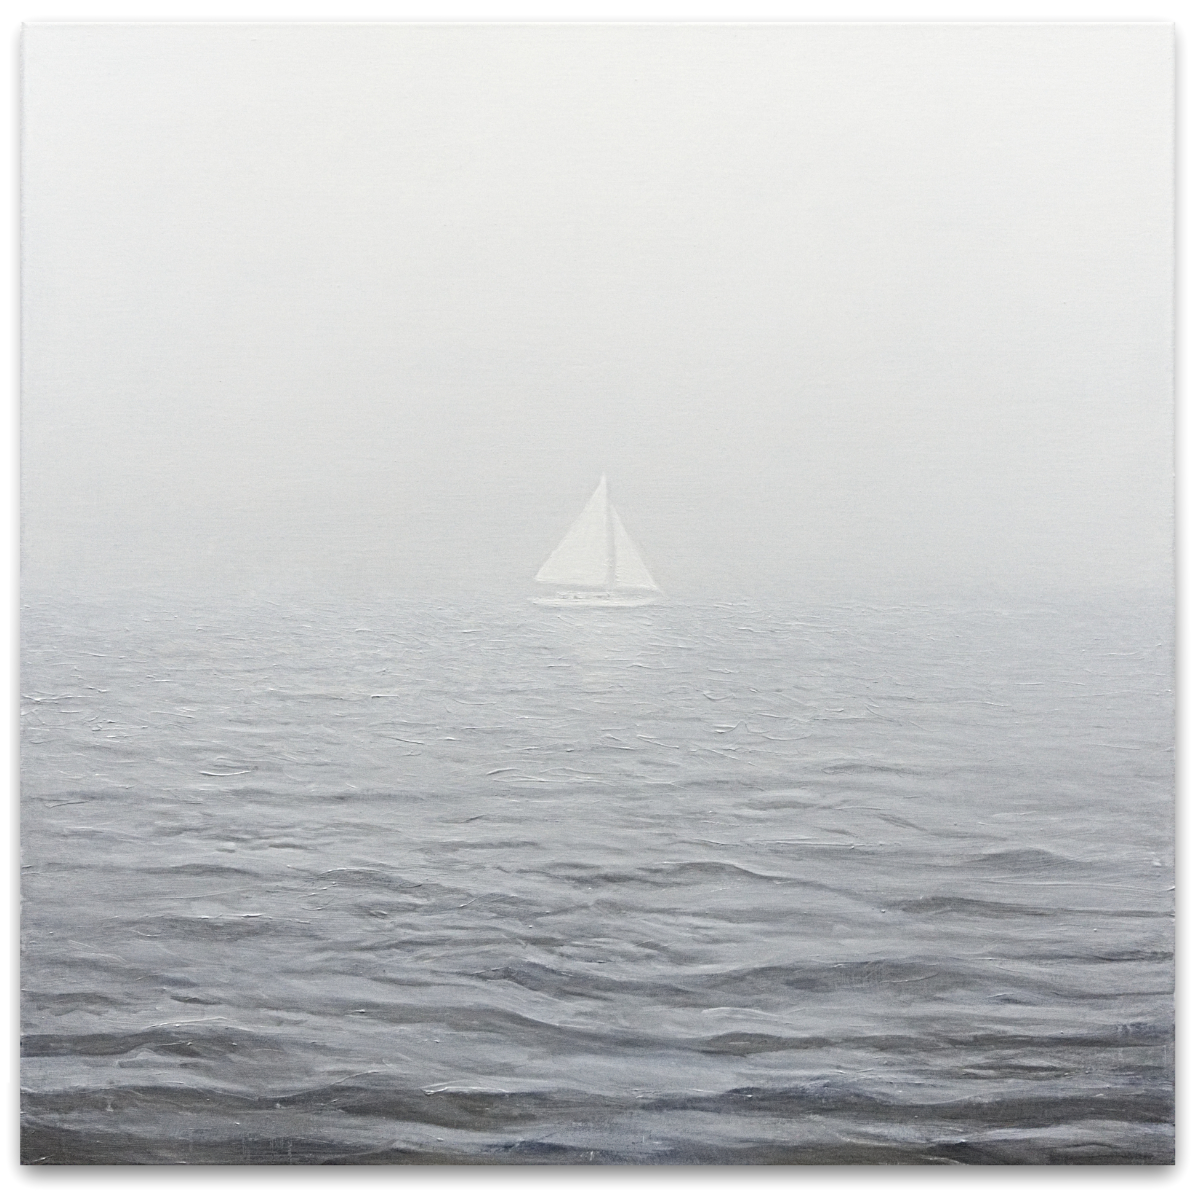 The Self at Sea, 2019, oil on linen, 120 x 120cm